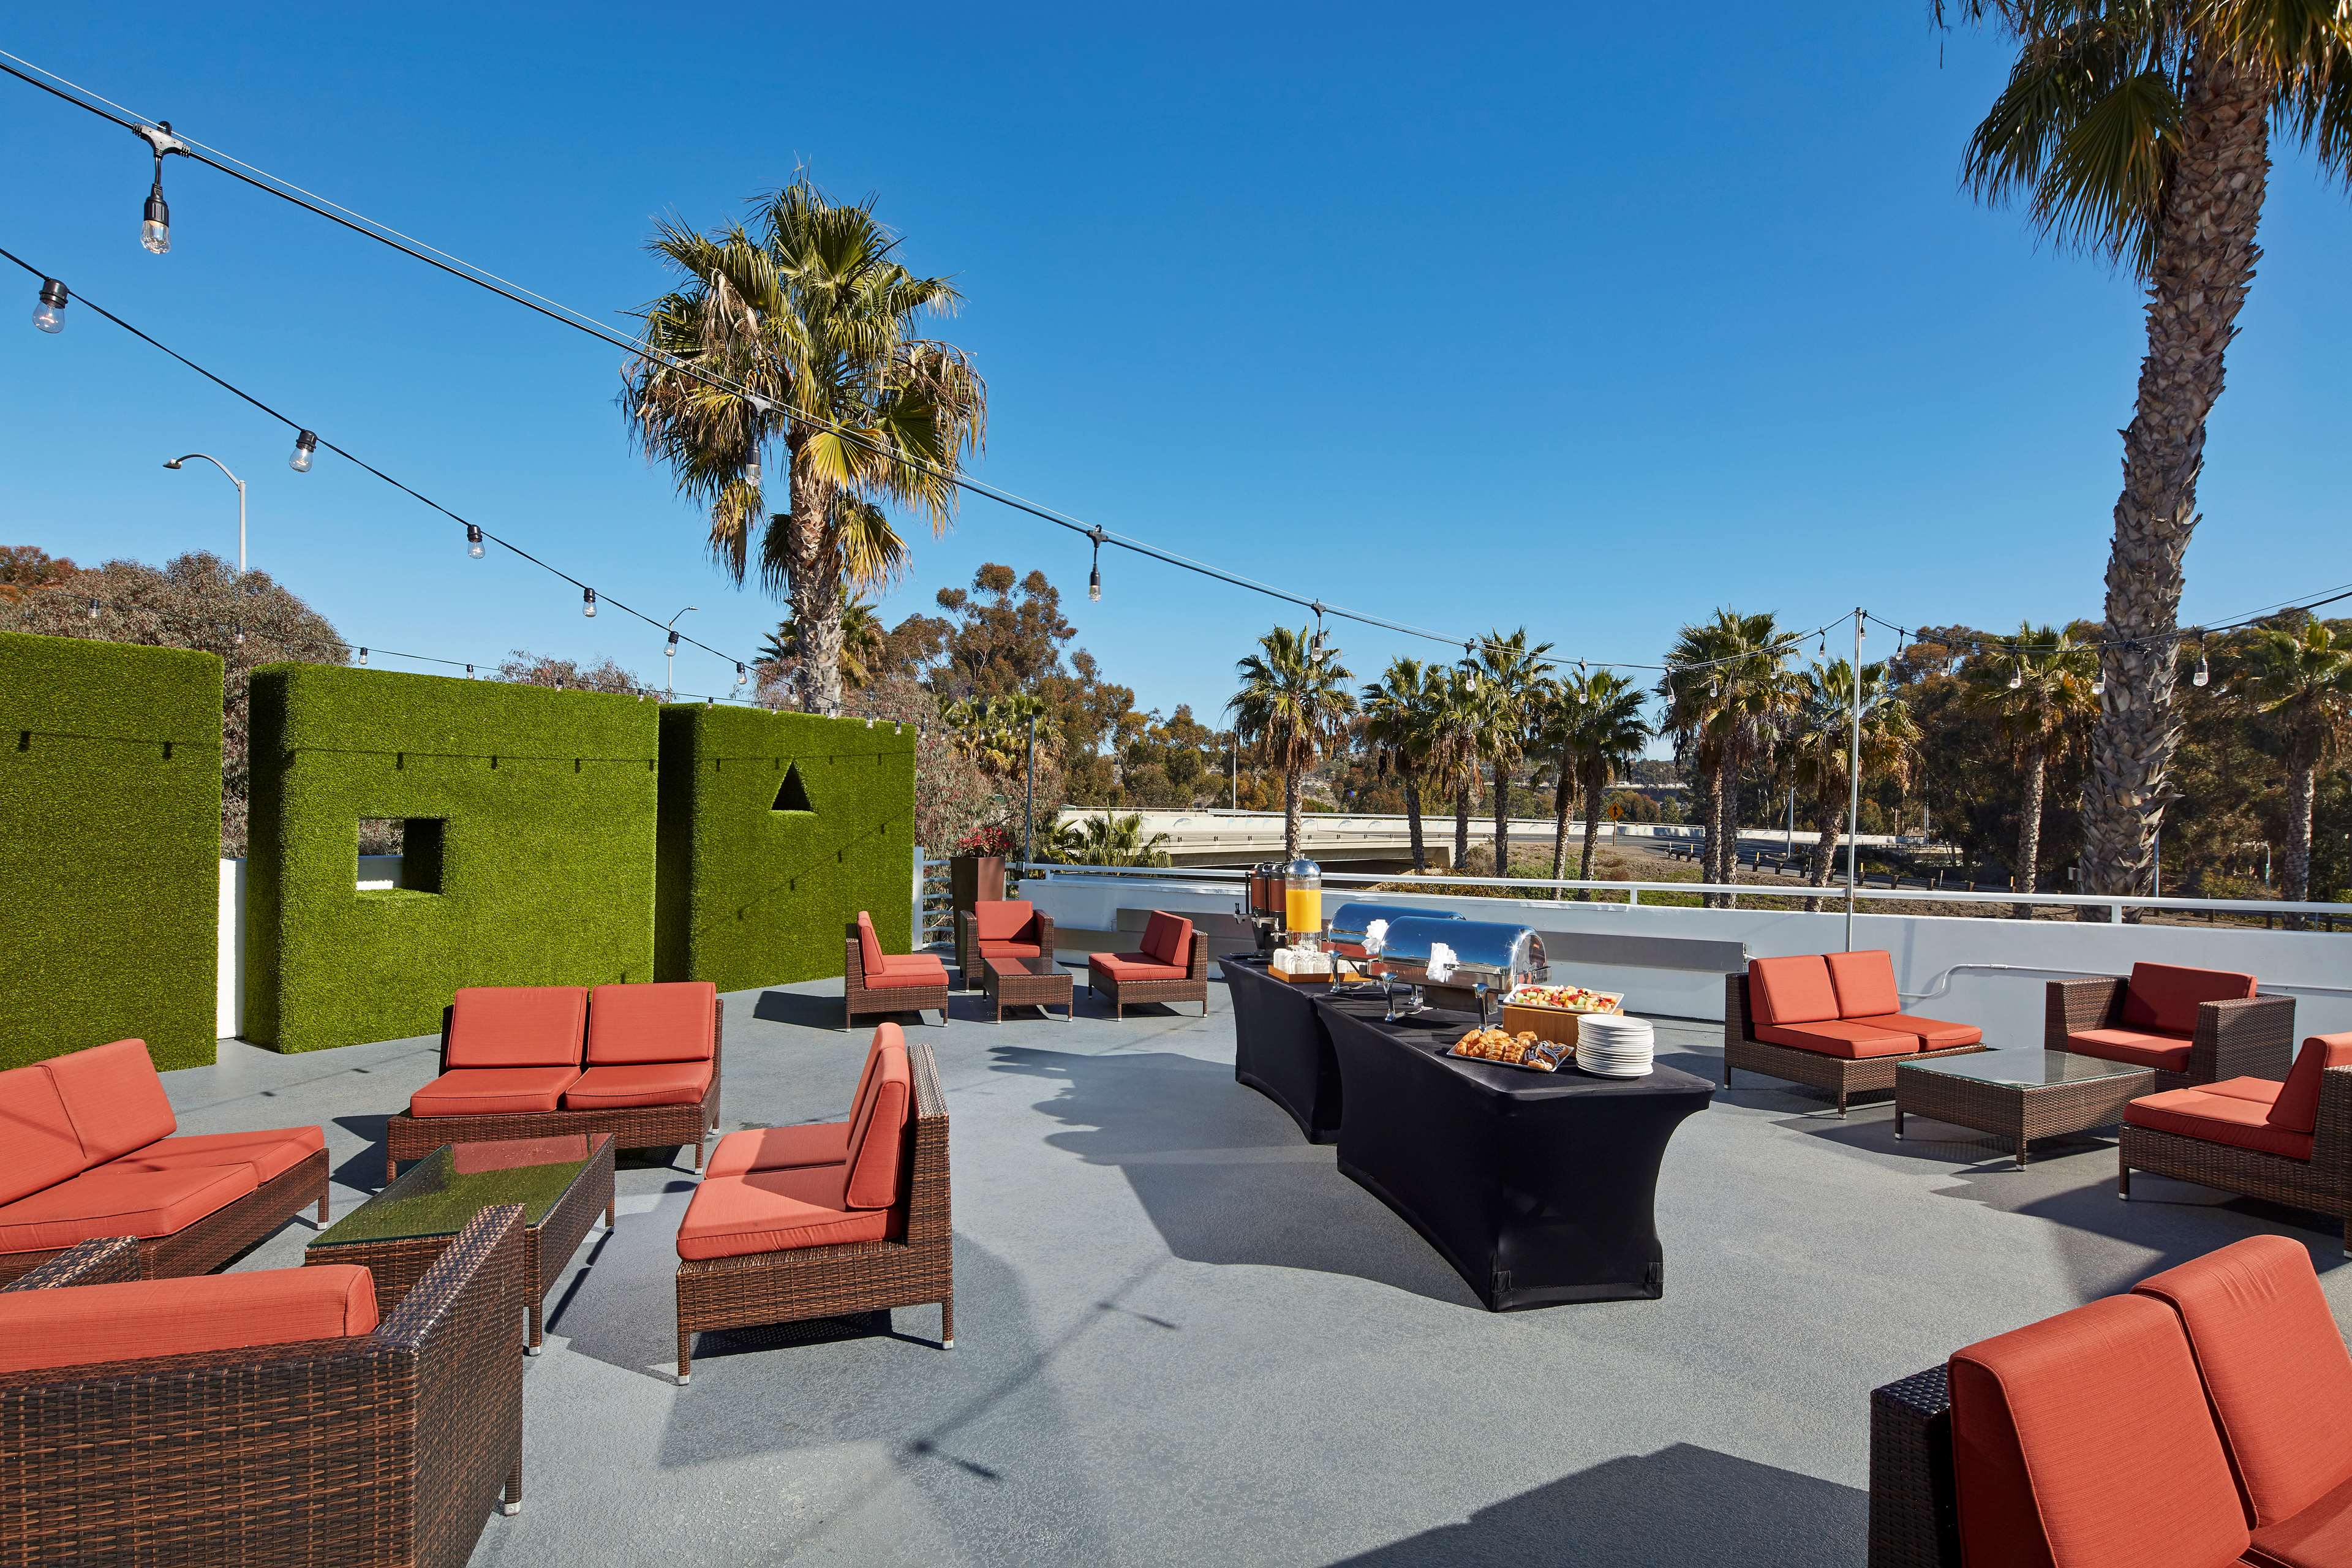 DoubleTree Suites by Hilton Hotel Doheny Beach - Dana Point image 28